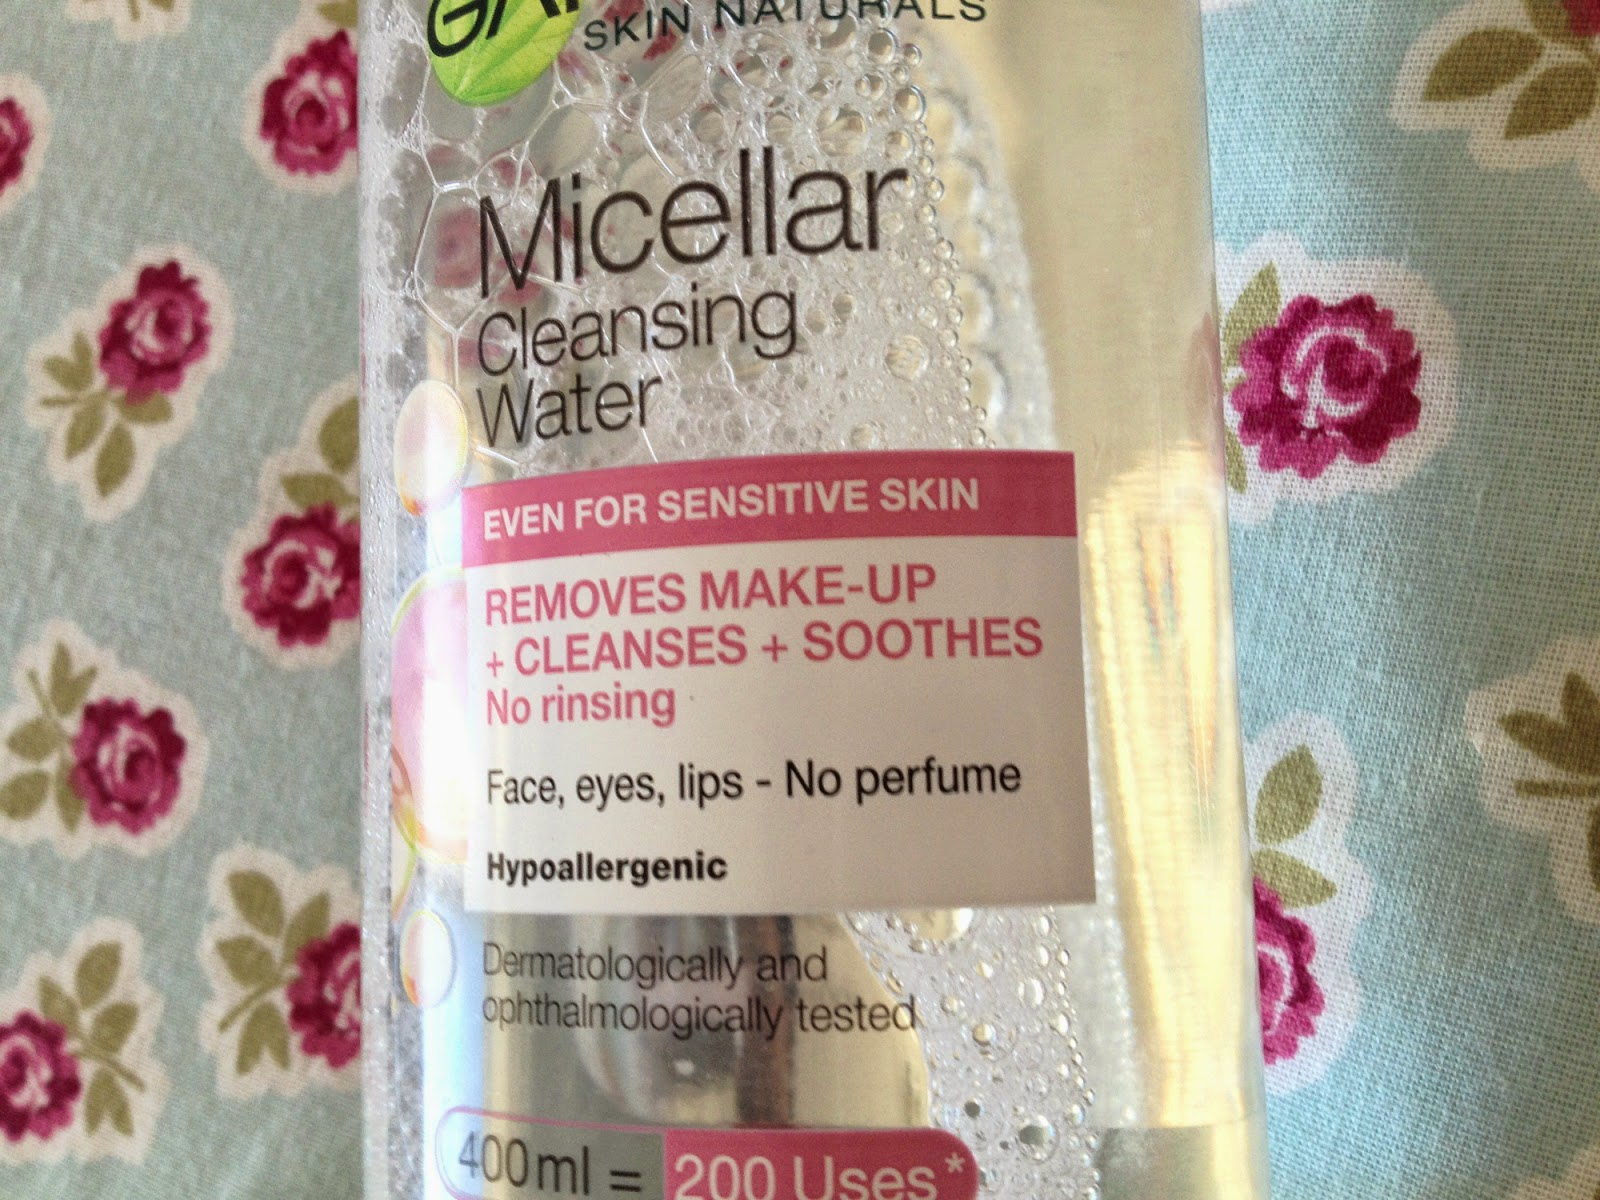 A close up of the micellar water